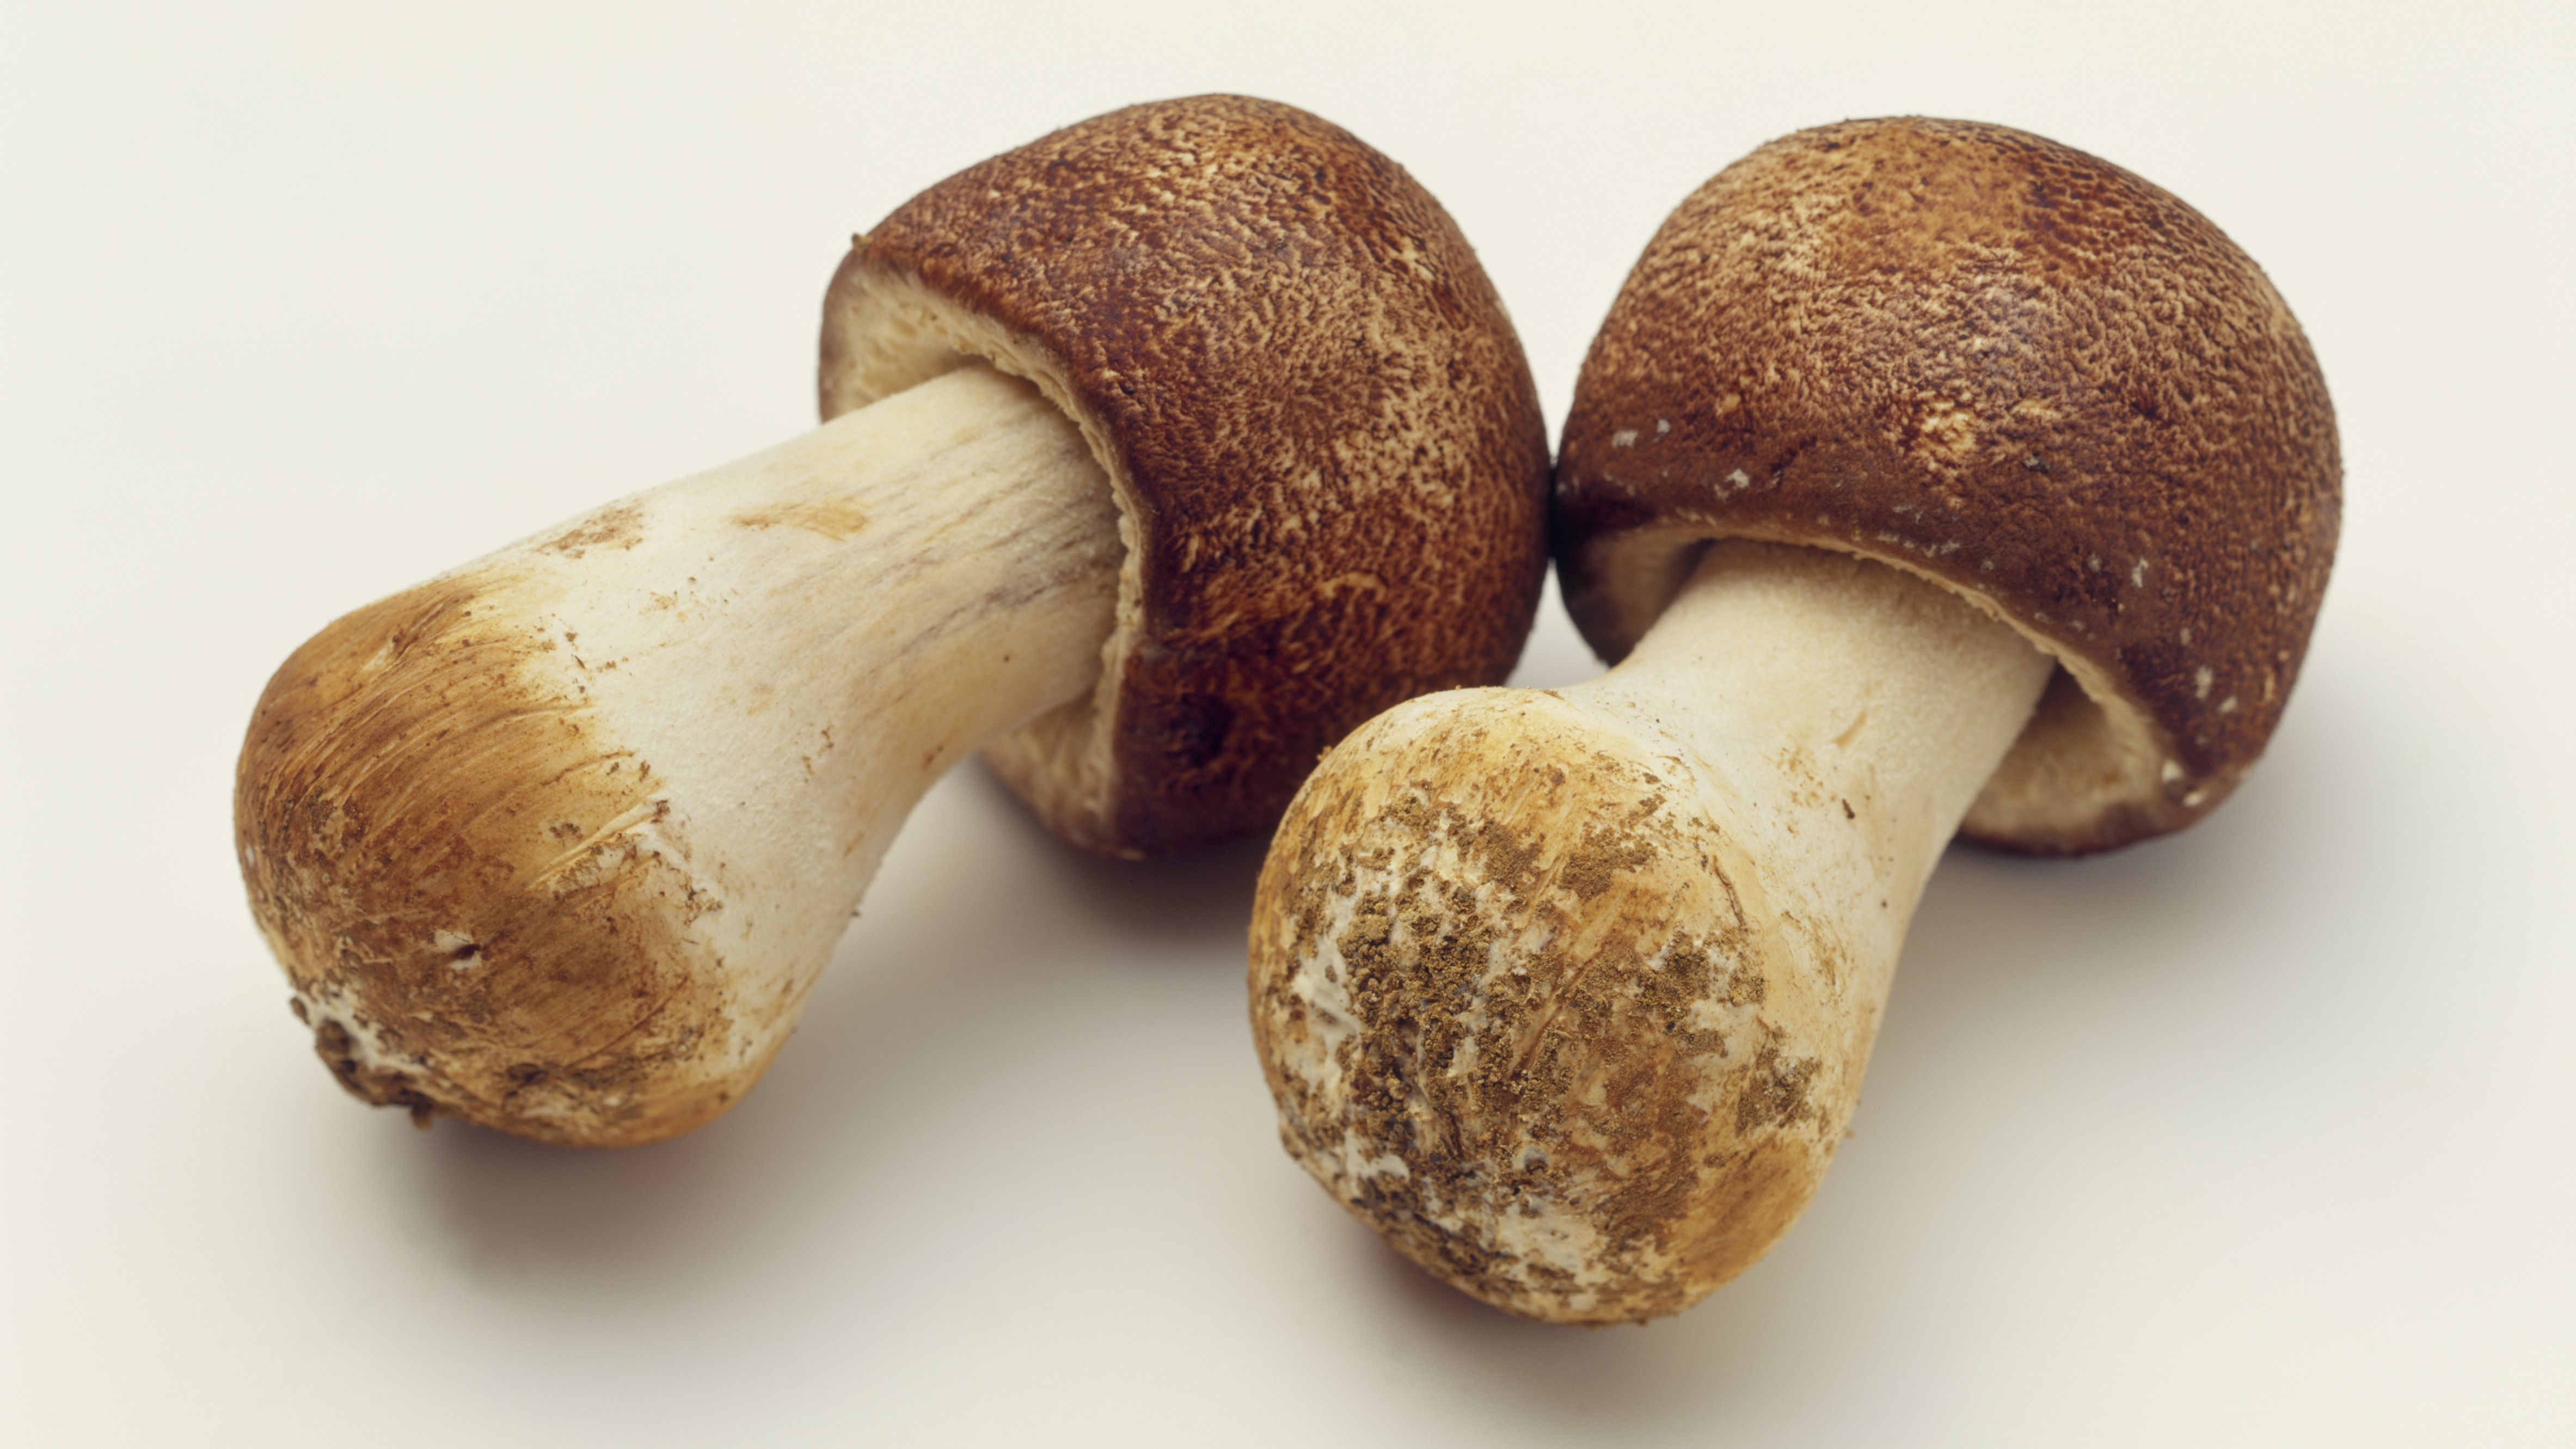 The Uses and Benefits of Agaricus Mushroom